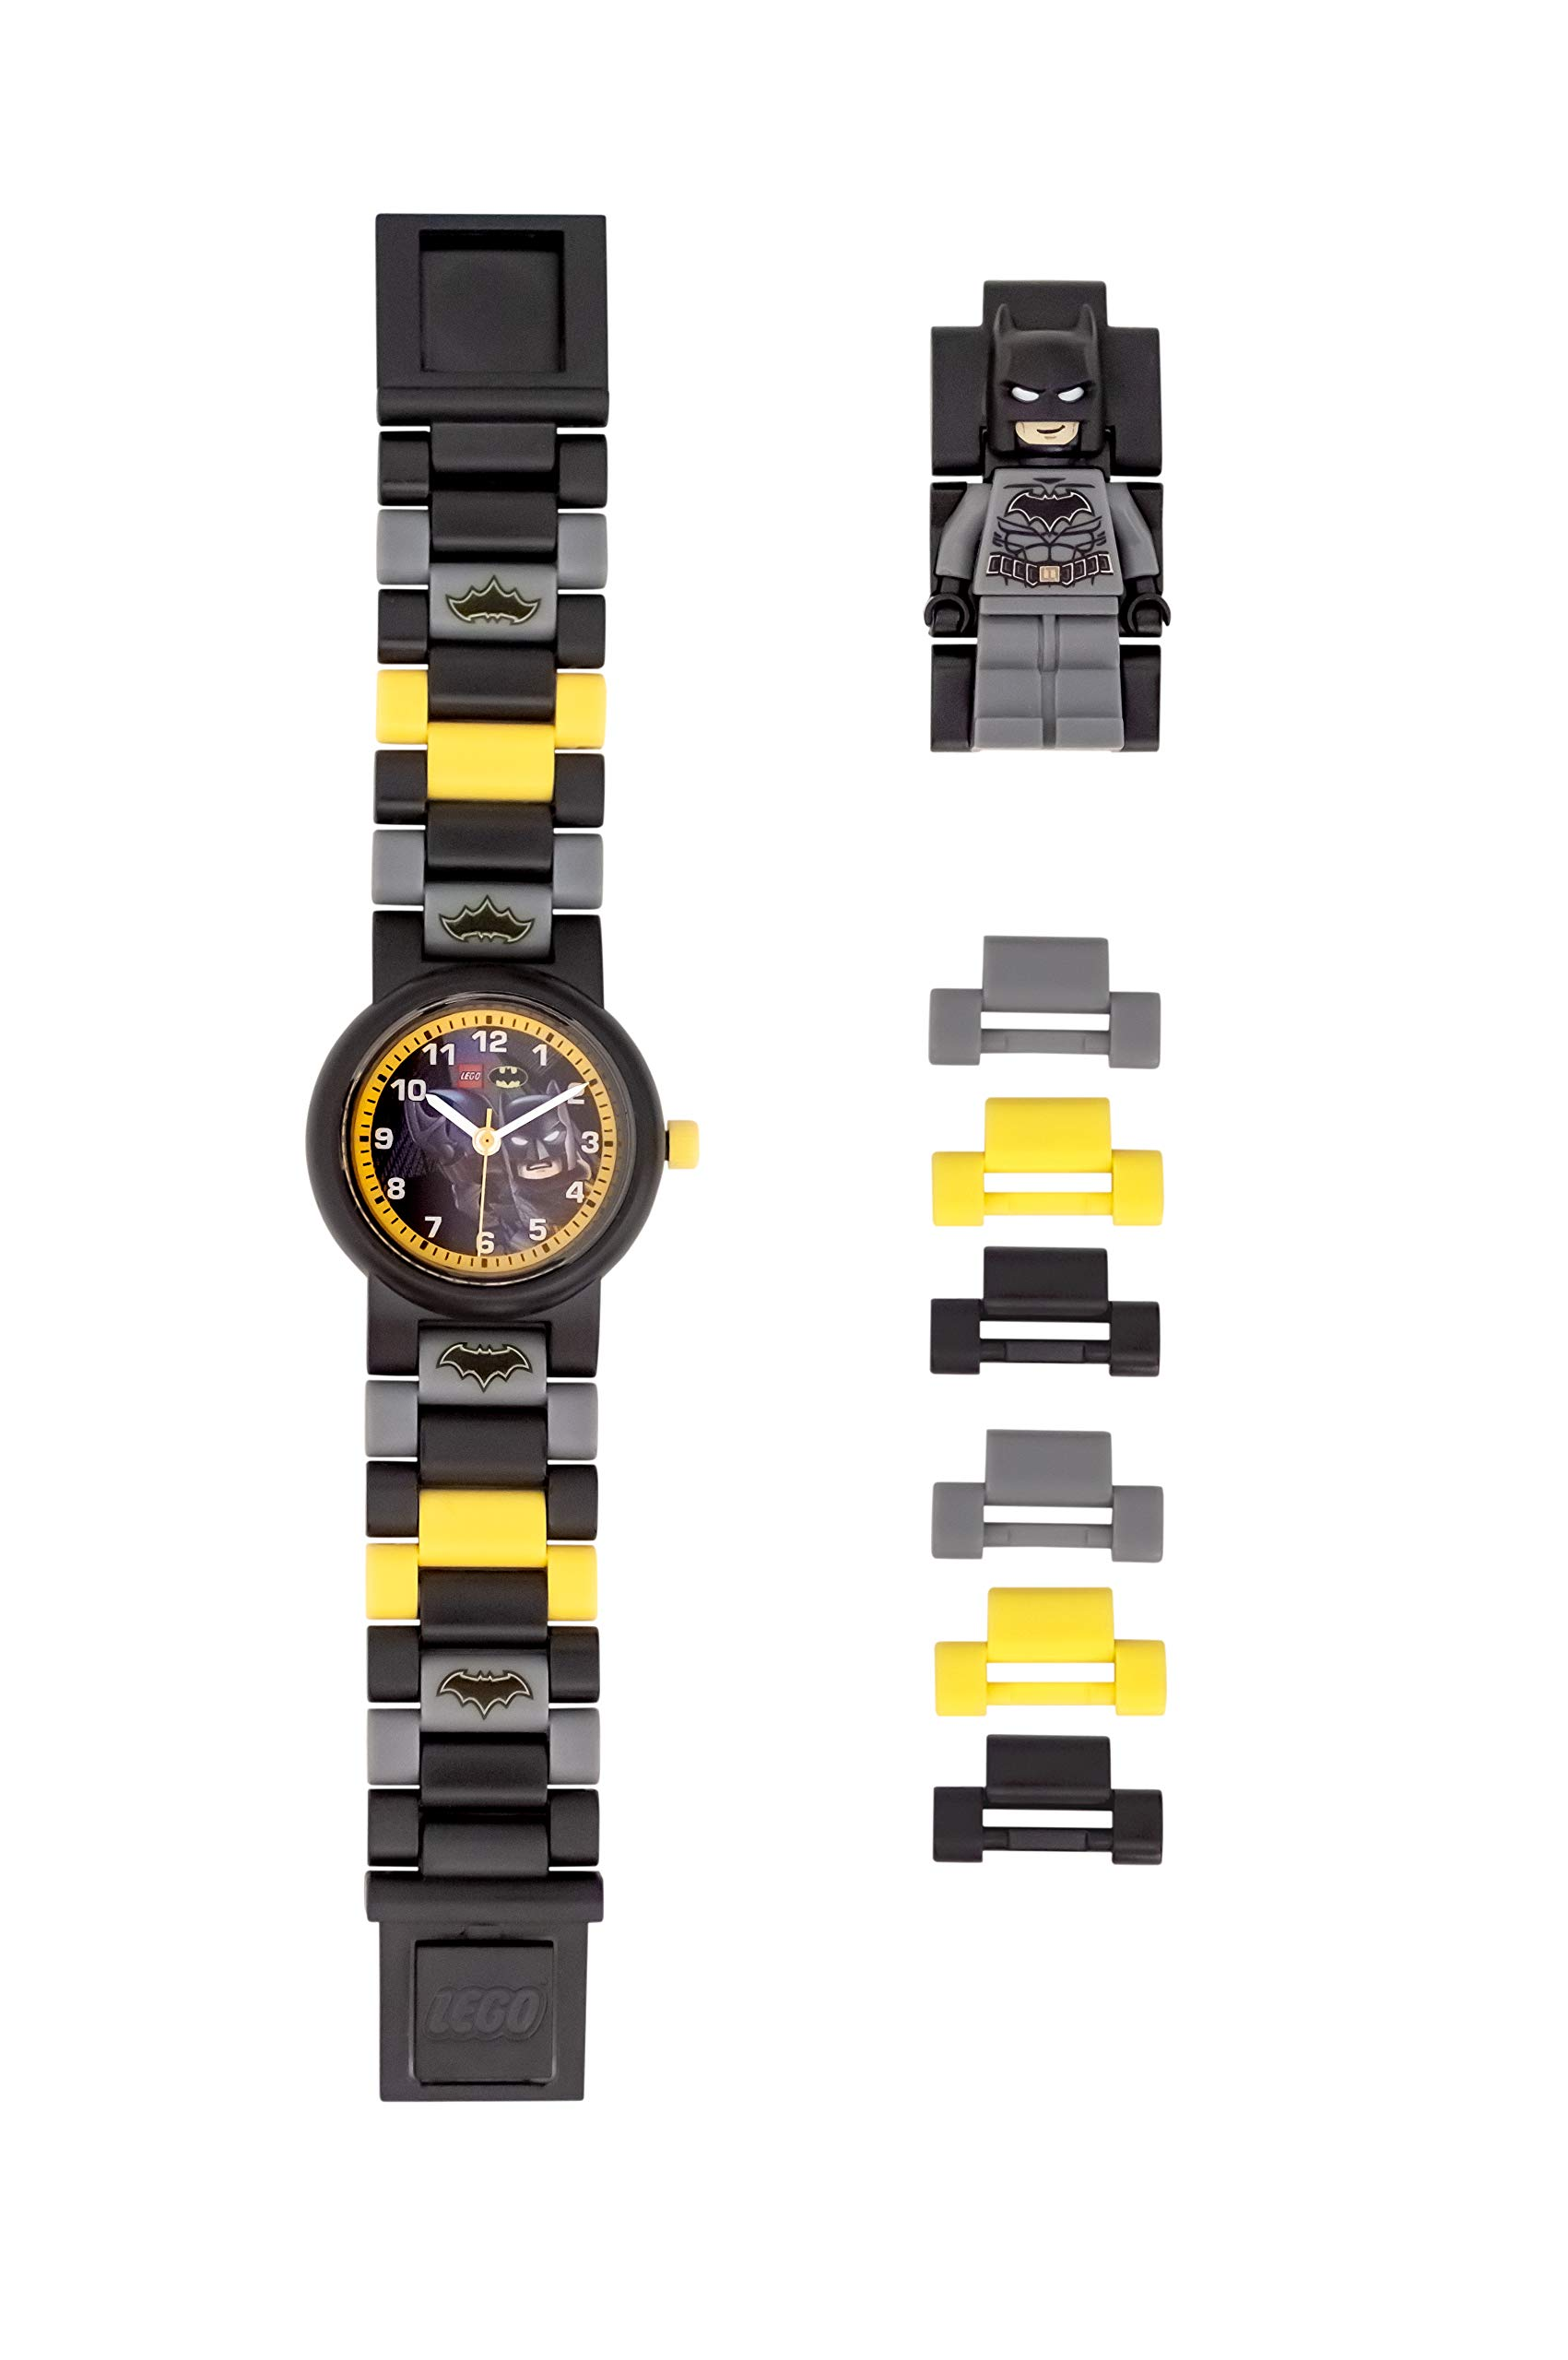 ClicTime Boys' LEGO Batman Analog Quartz Watch with Plastic Strap, Black, 20 (Model: 8021568) by ClicTime